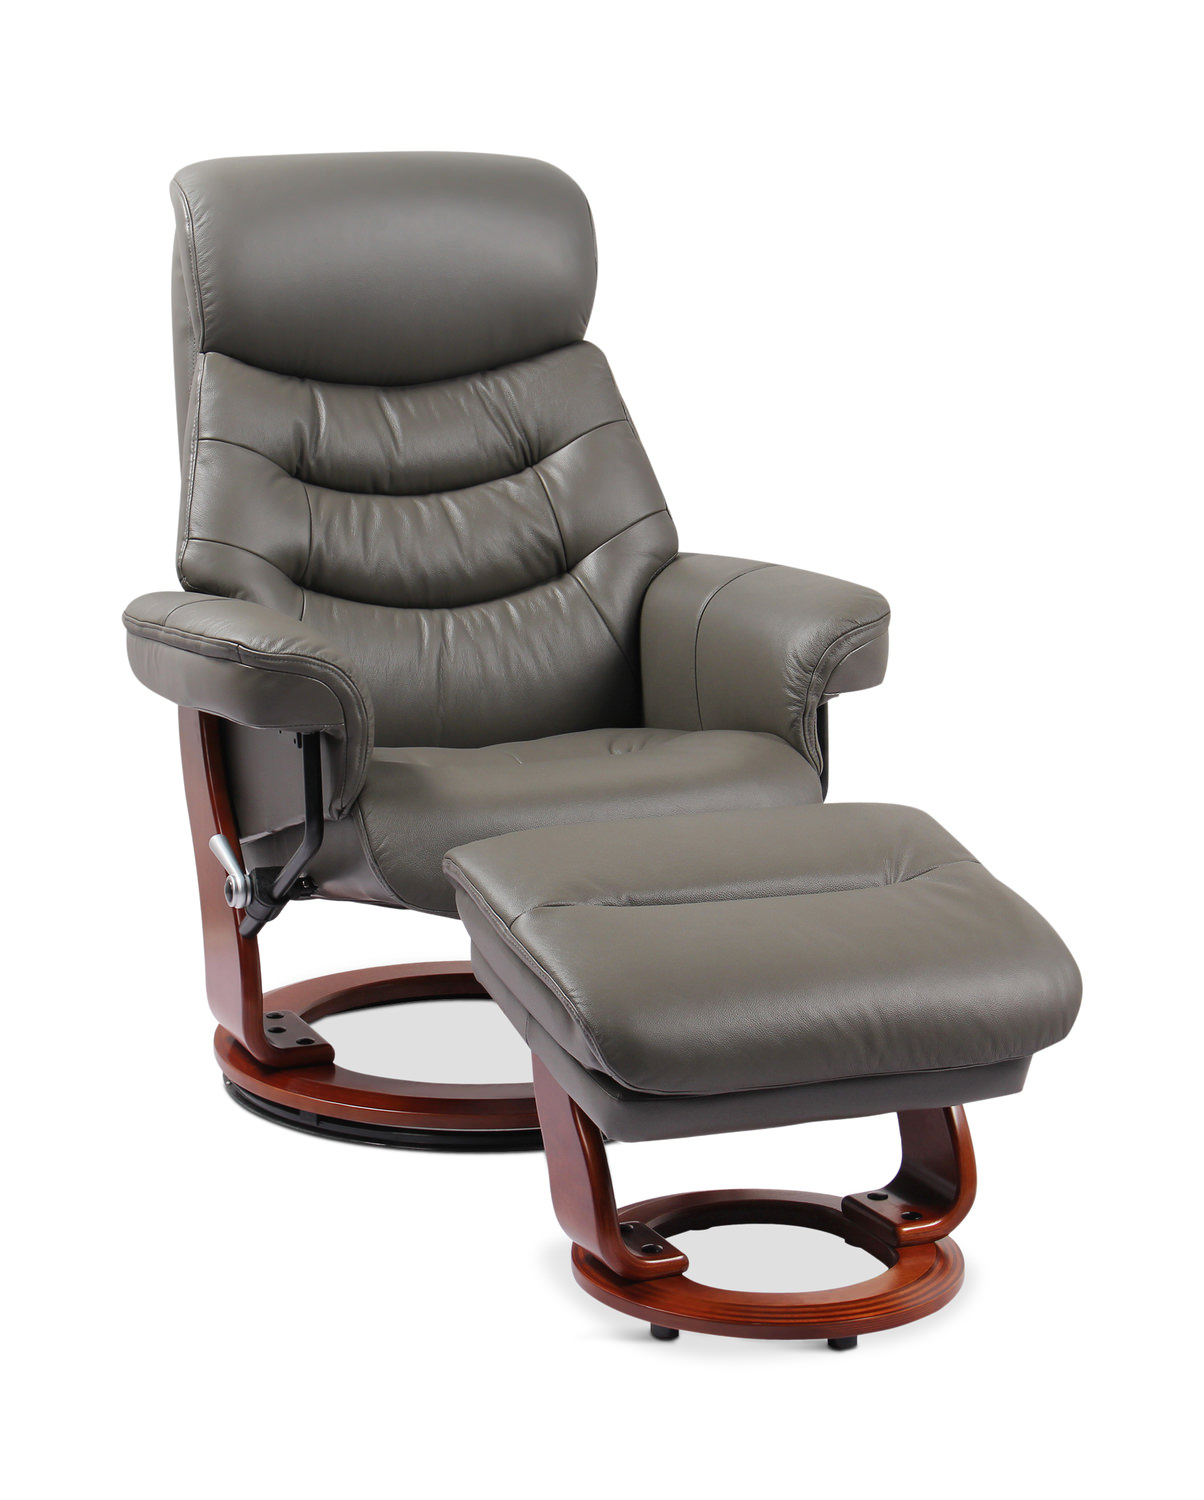 Strange Kermit Leather Swivel Recliner And Ottoman Ibusinesslaw Wood Chair Design Ideas Ibusinesslaworg